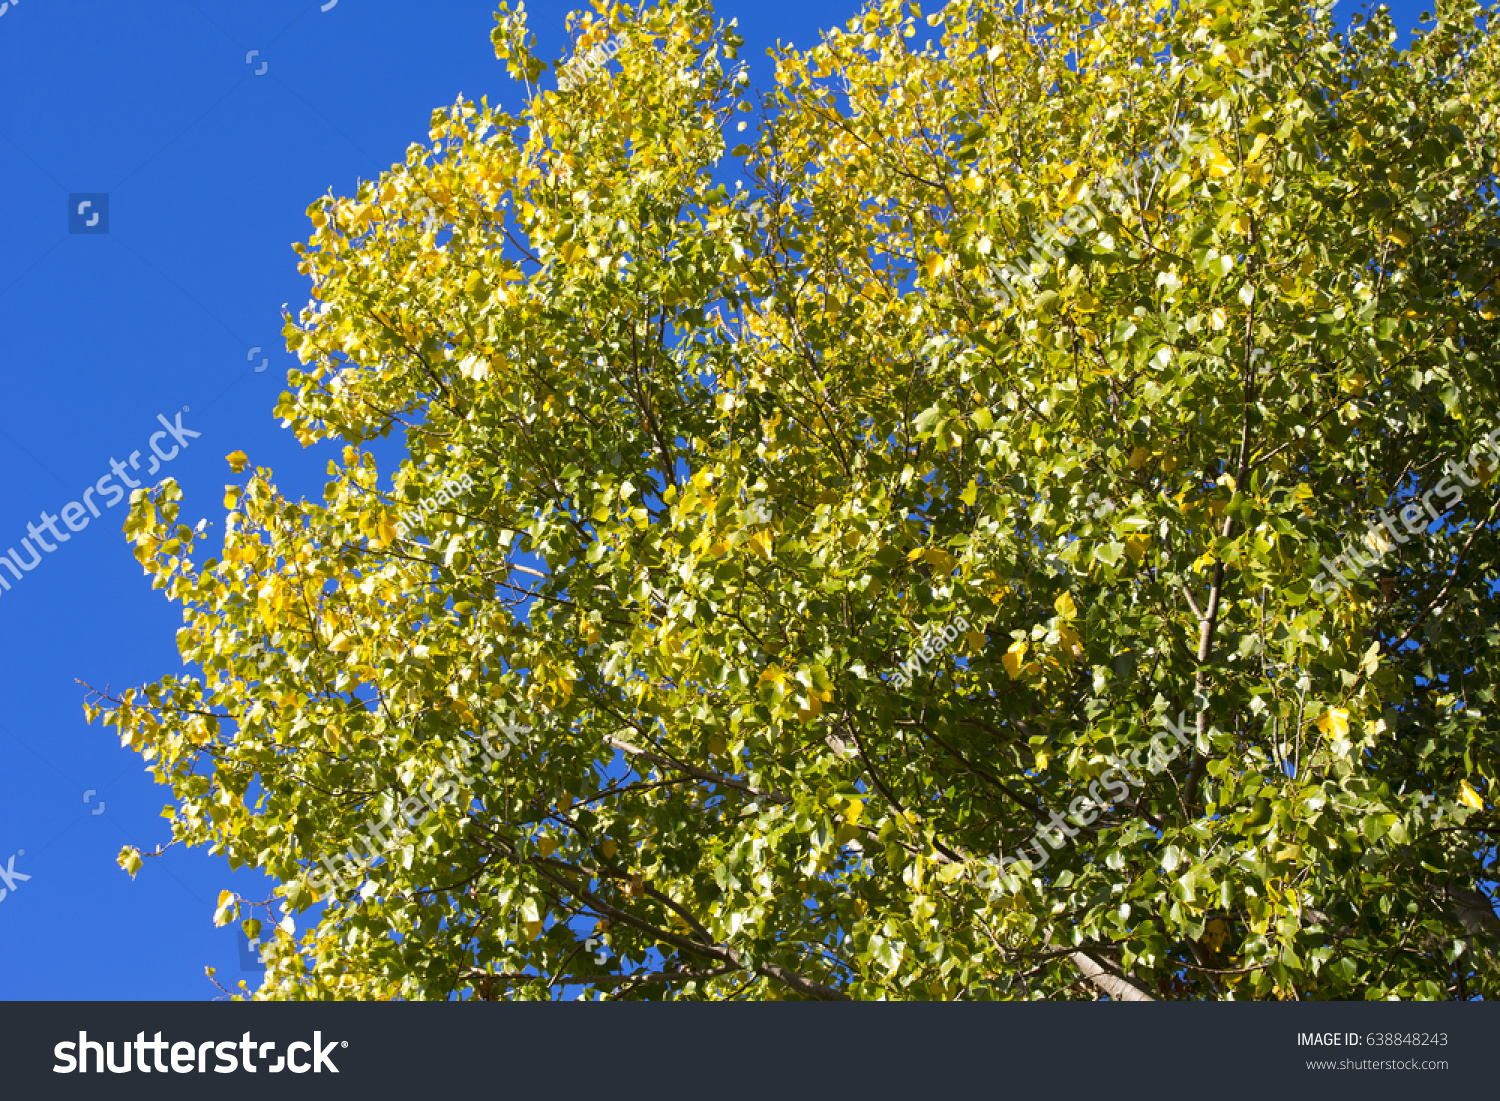 Brilliant Yellow Autumn Poplar Leaf Foliage Stock Photo 638848243 ...